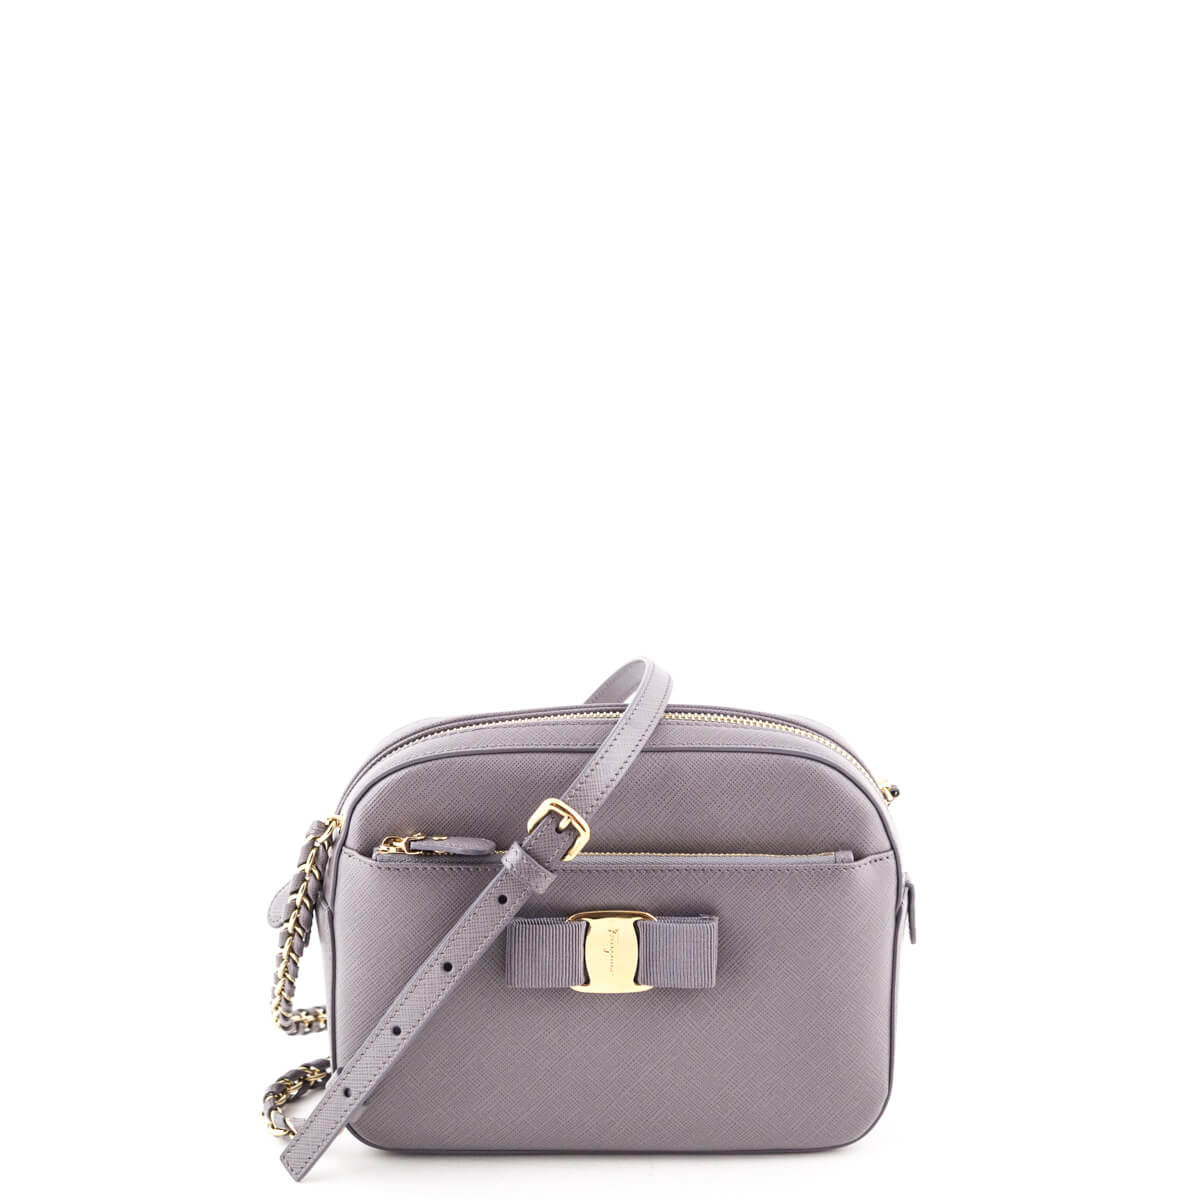 310a21f3f0 Salvatore Ferragamo Purple Gray Calfskin Lydia Camera Bag - LOVE that BAG -  Preowned Authentic Designer ...